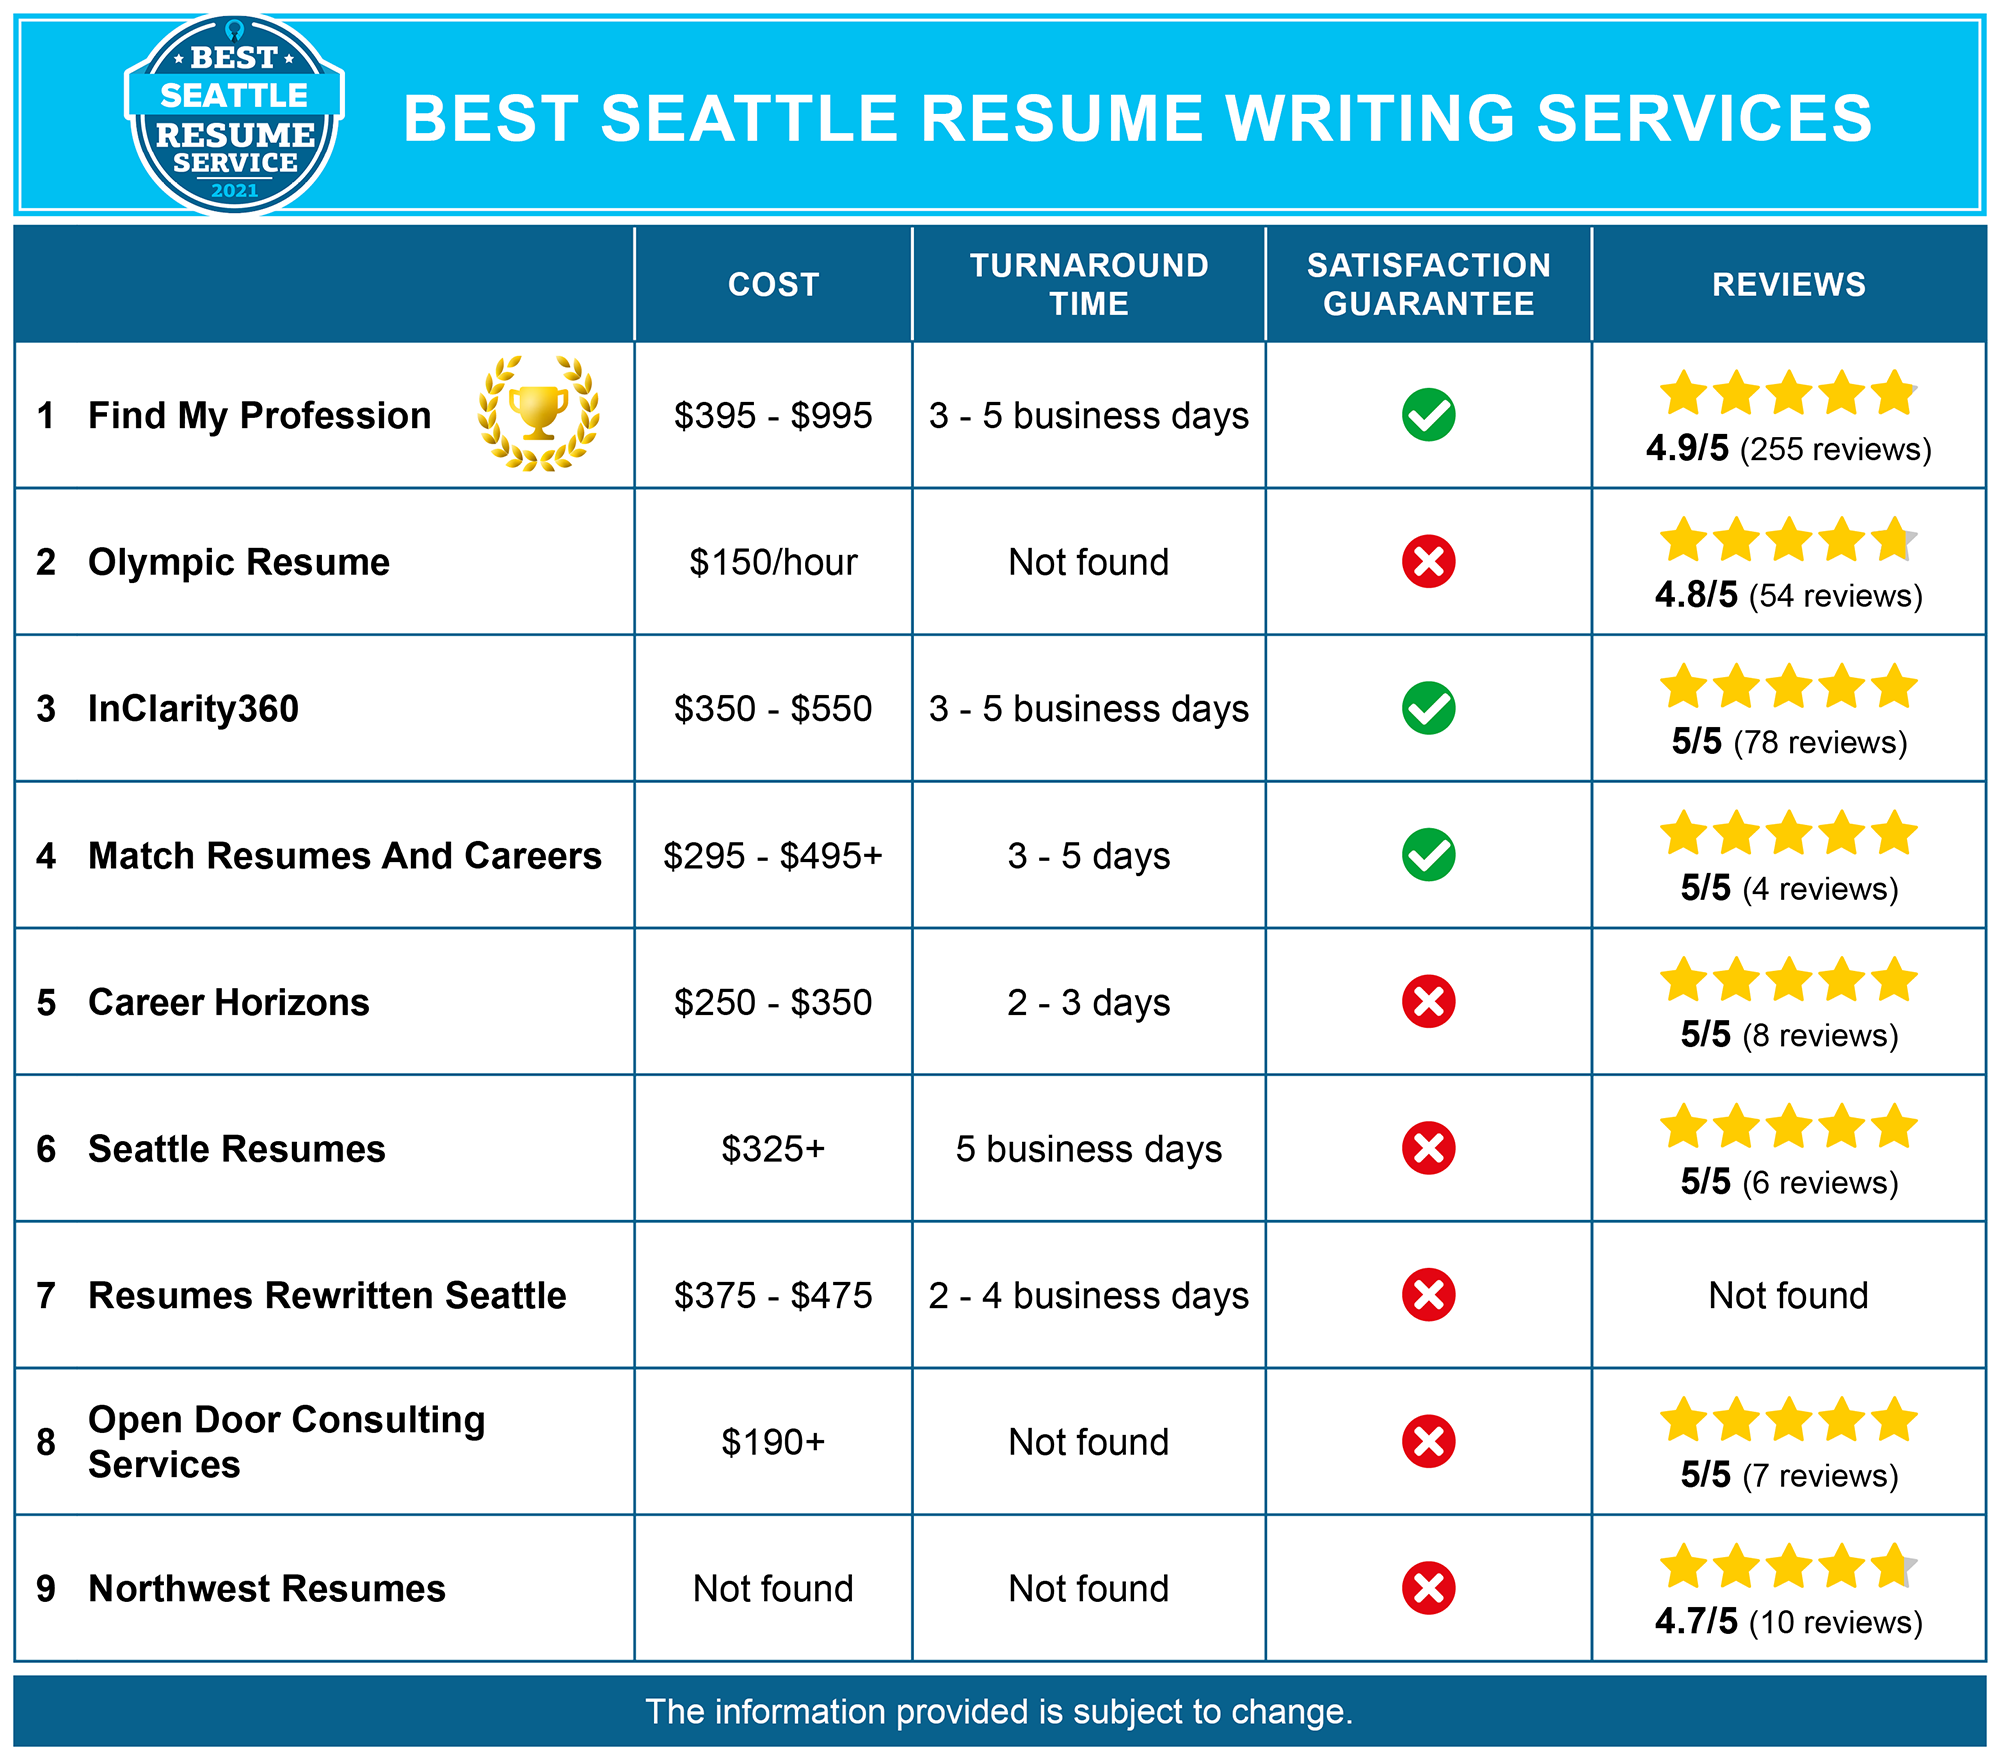 Best Seattle Resume Services